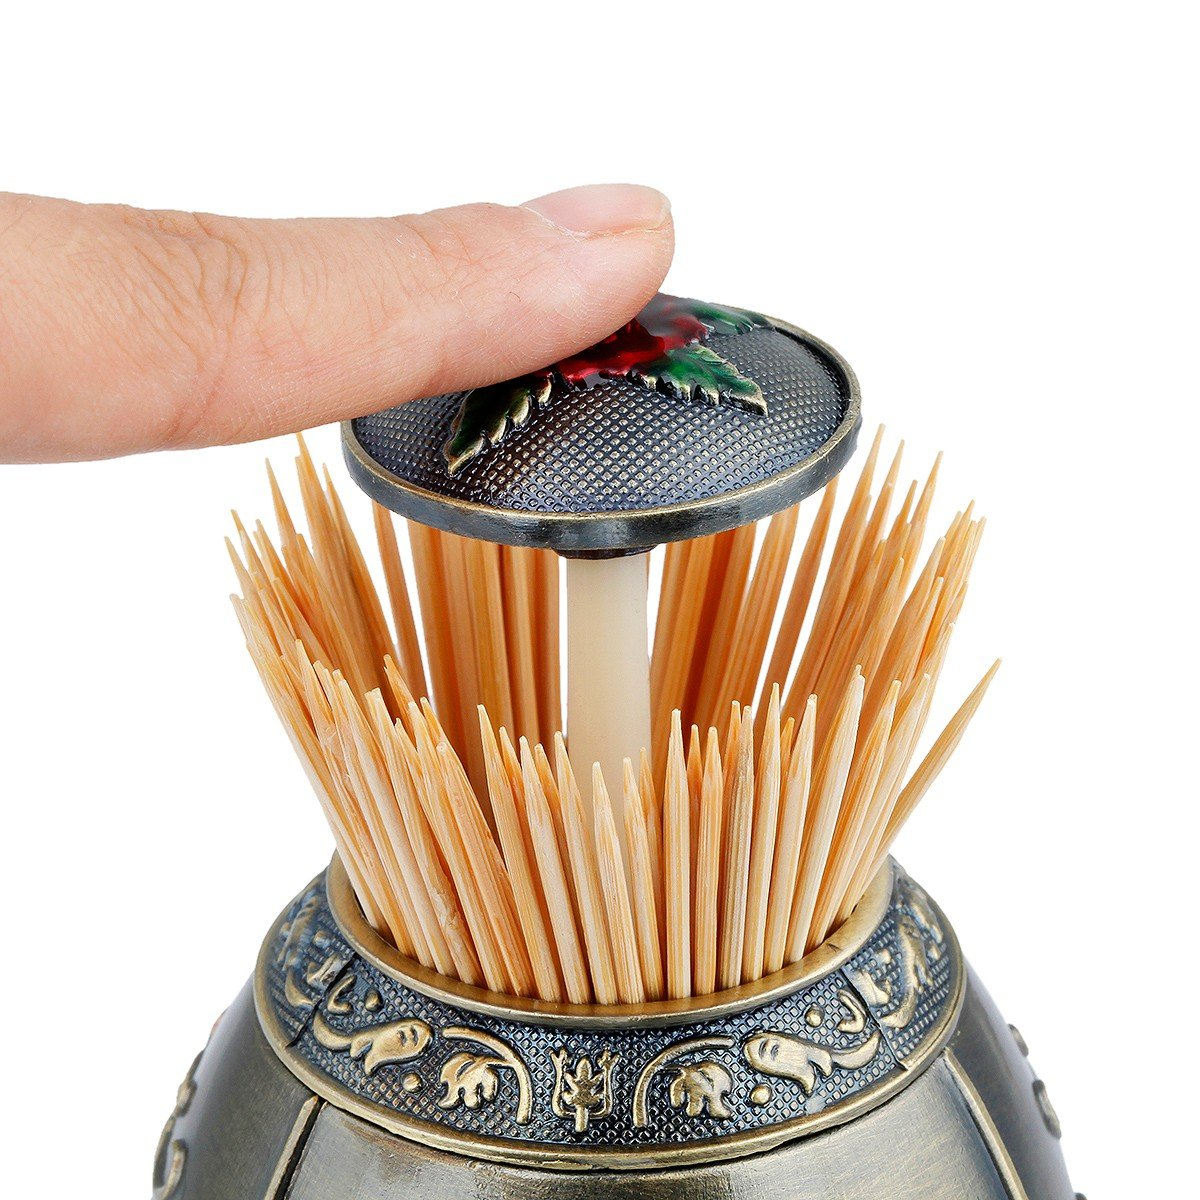 mookaitedecor Metal Automatic Toothpick Holder with Bottle Opener Push Style Auto Toothpicks Case for Home Hotel Decoration by mookaitedecor (Image #4)